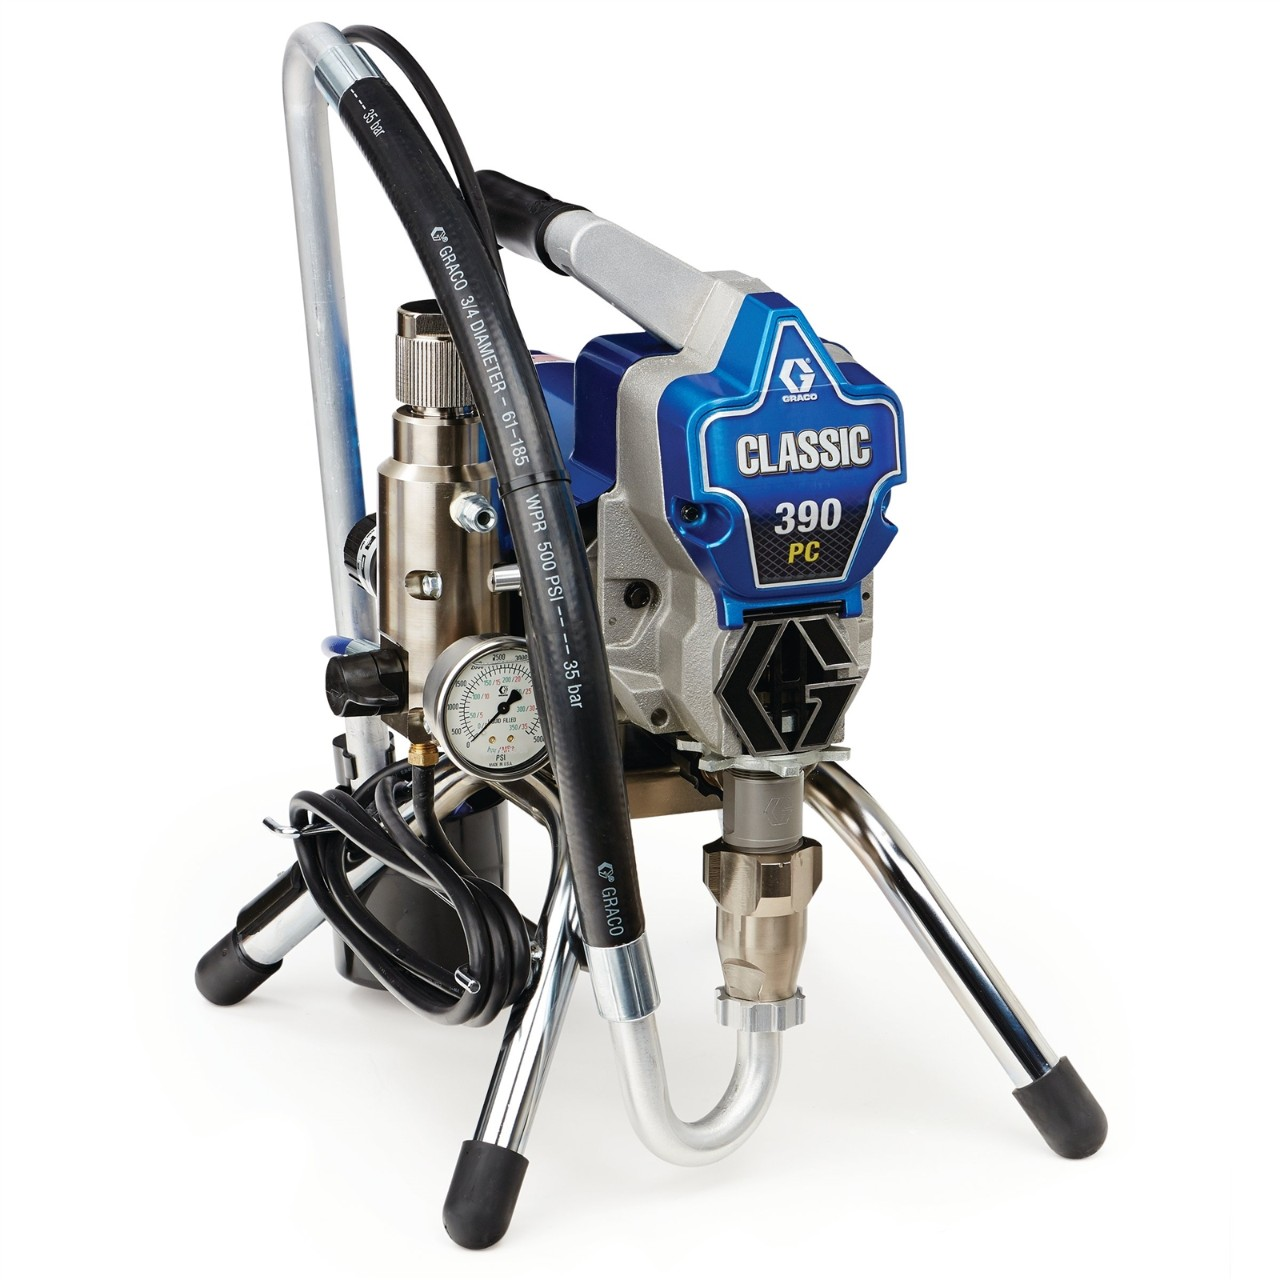 Classic 390 PC Electric Airless Sprayer - ProQuip